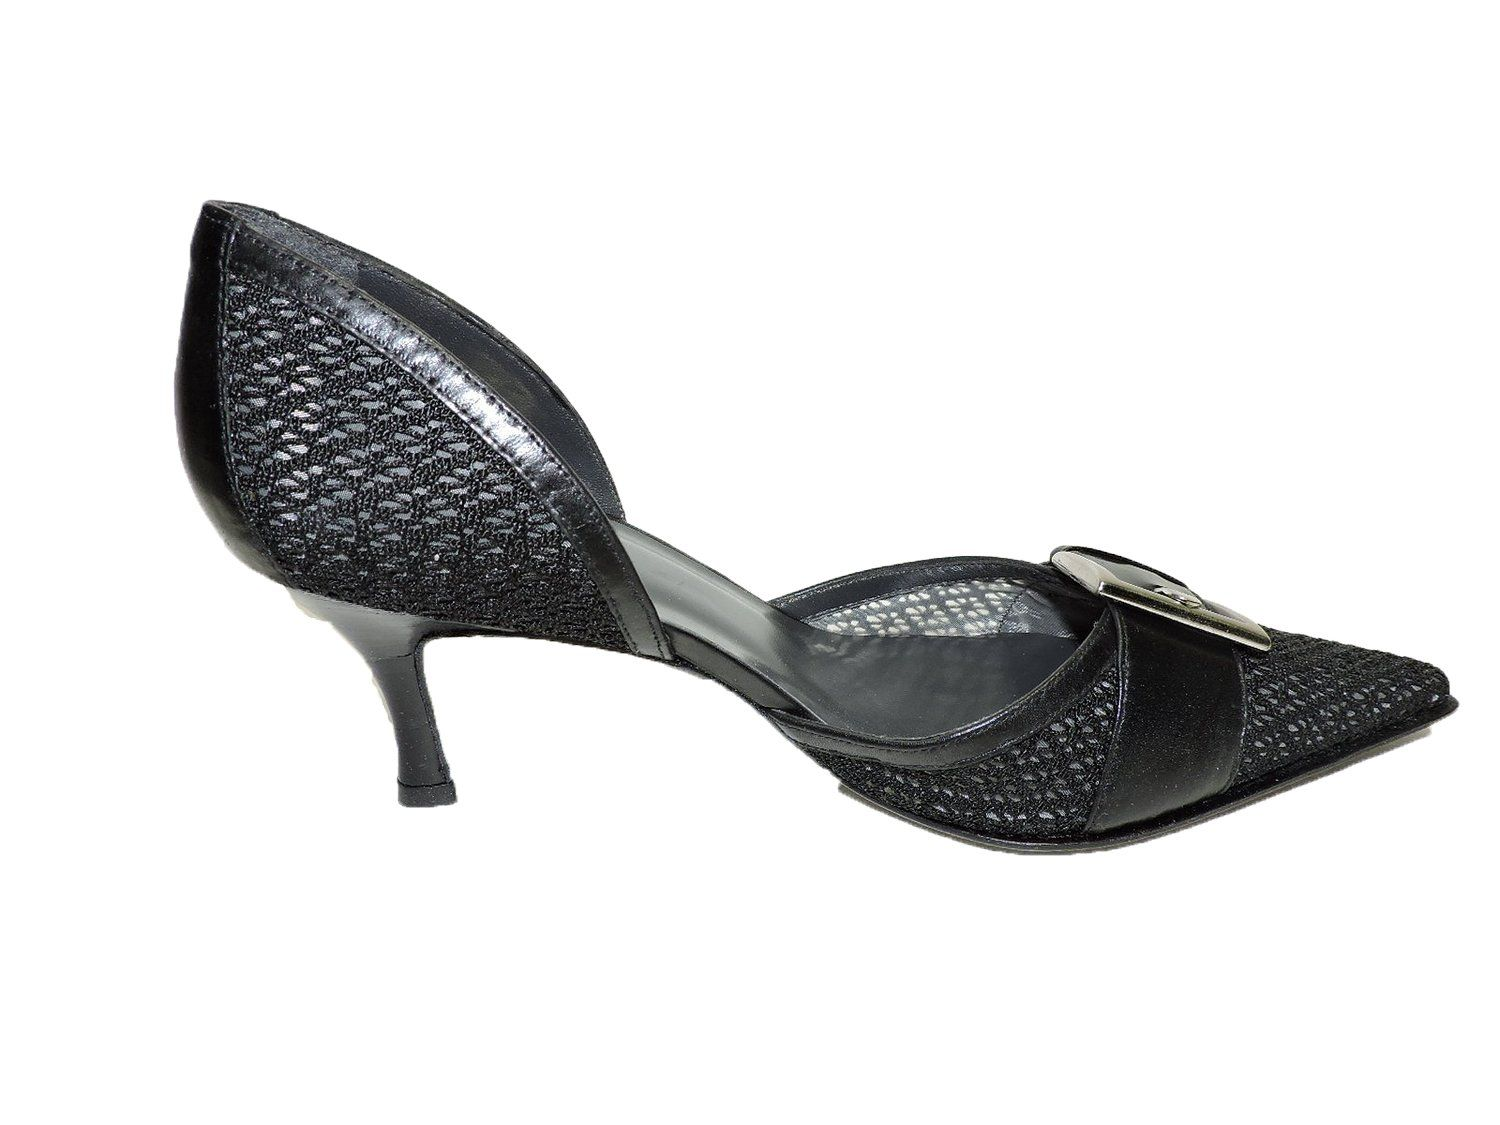 Black mesh sandals